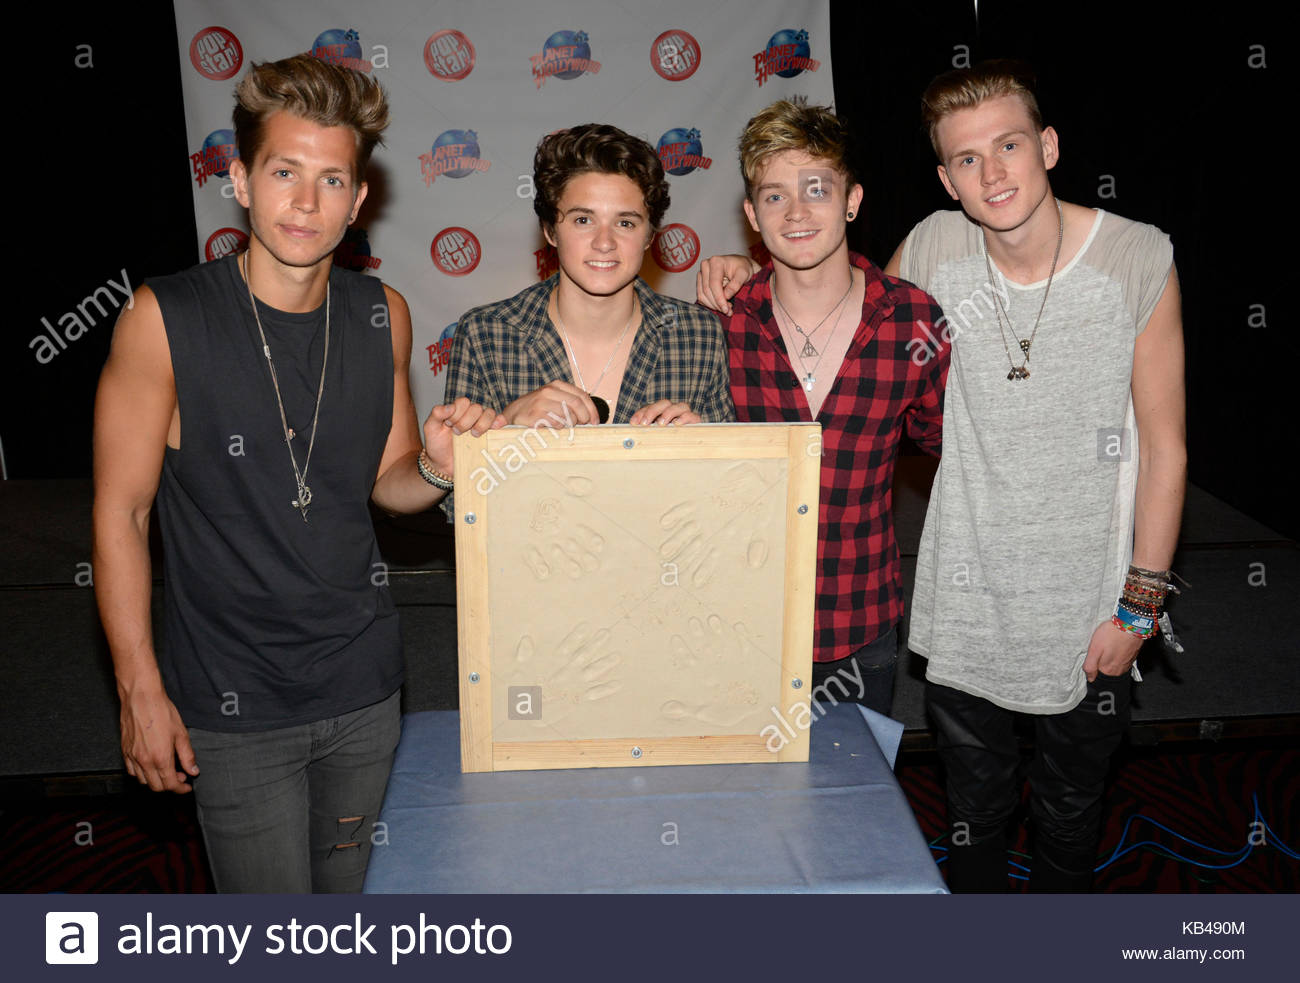 The vamps james mcvey connor ball bradley simpson and tristan the vamps james mcvey connor ball bradley simpson and tristan evans the vamps appear at planet hollywood times square nyc for a fan meet and greet m4hsunfo